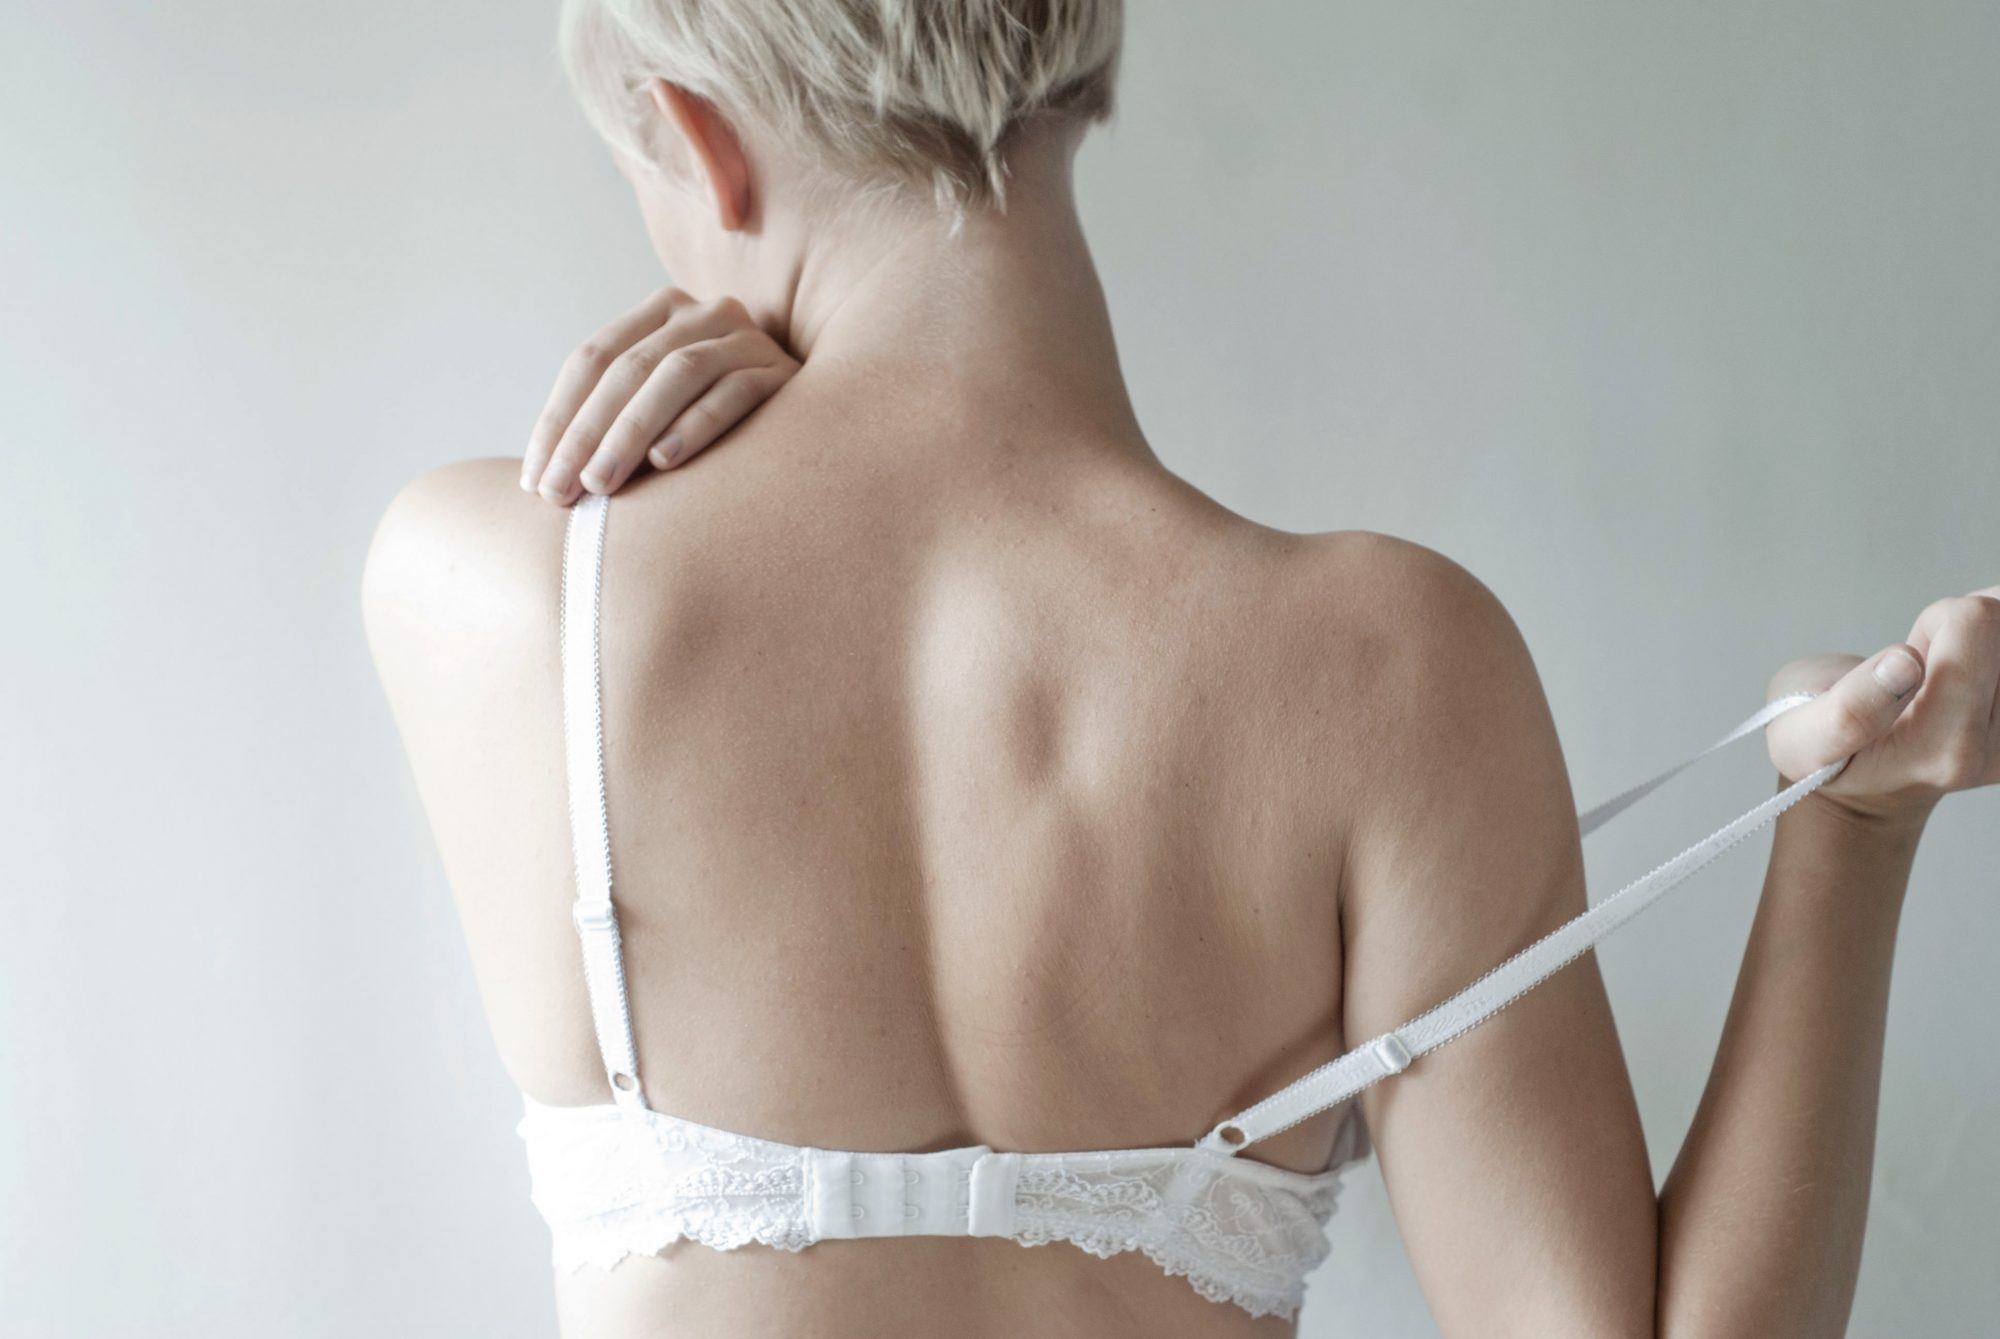 7 Things You Can and Can't Do About Saggy Breasts